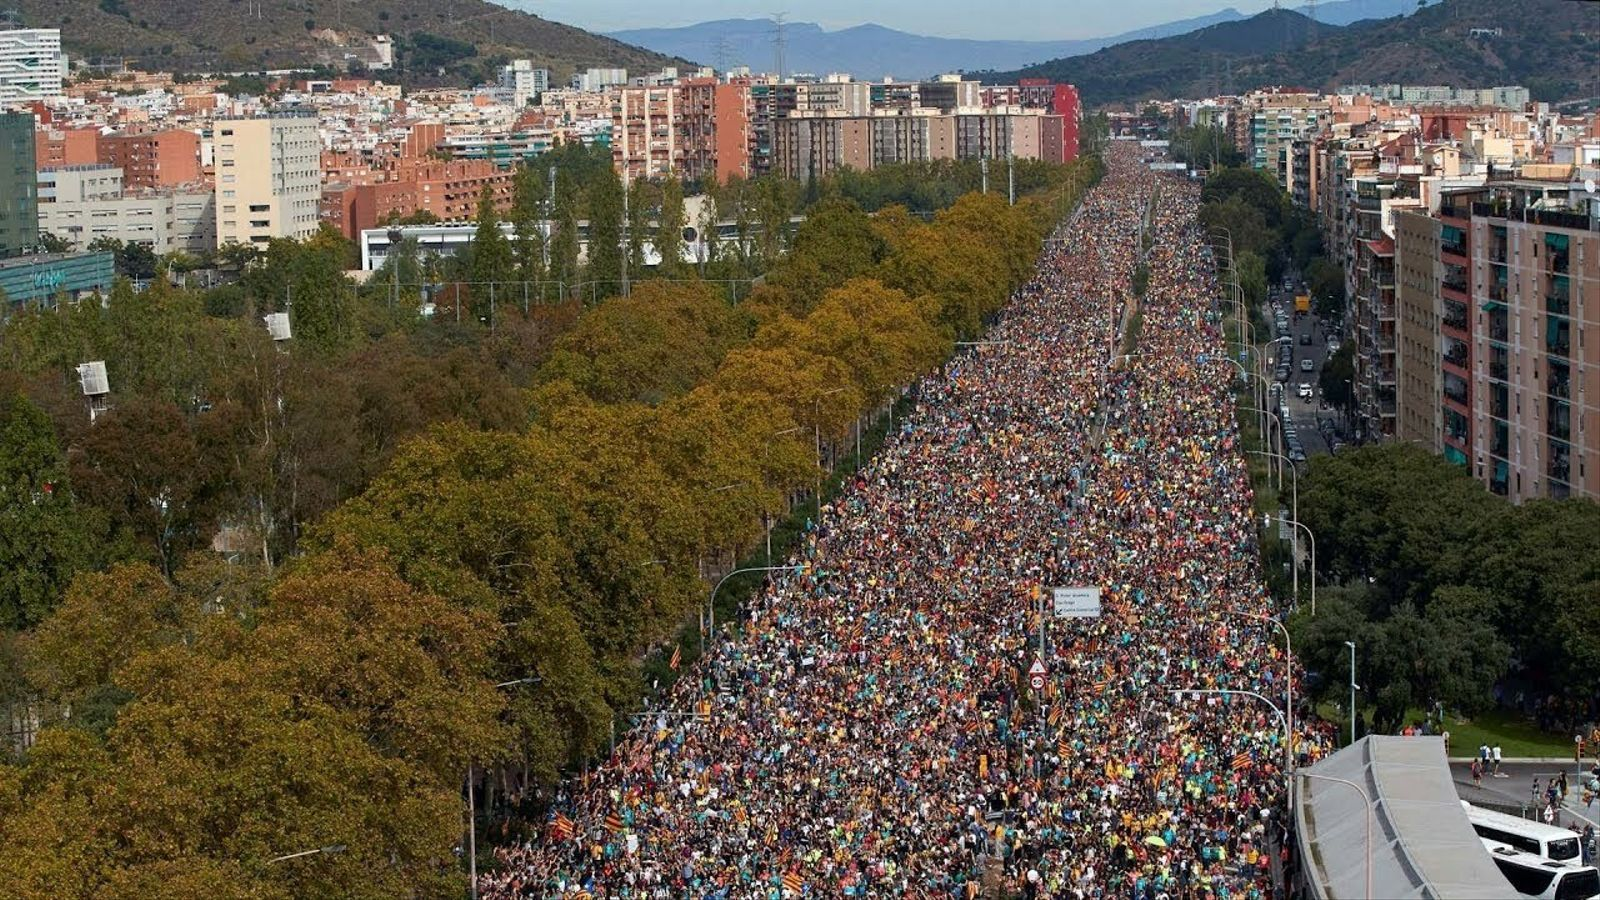 'What's going on in Catalonia?' by Antoni Bassas